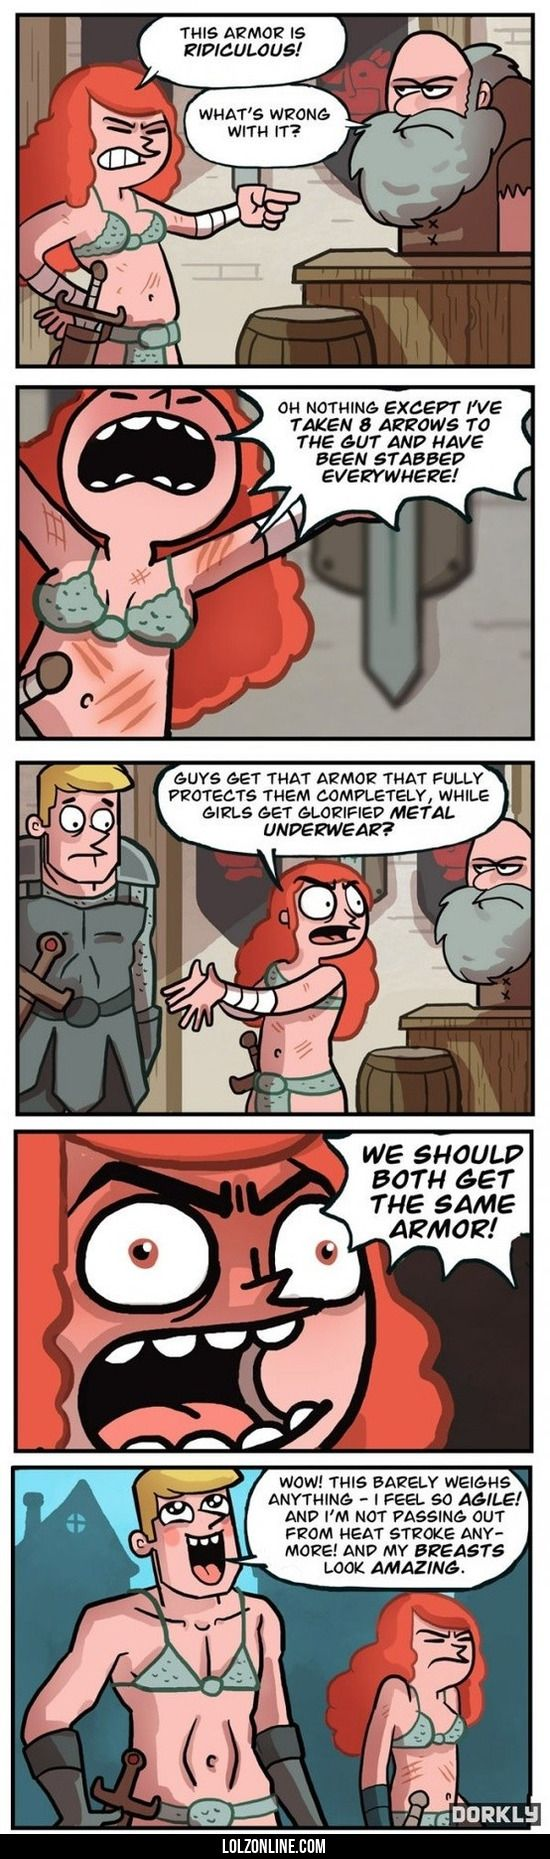 Video Game Logic#funny #lol #lolzonline